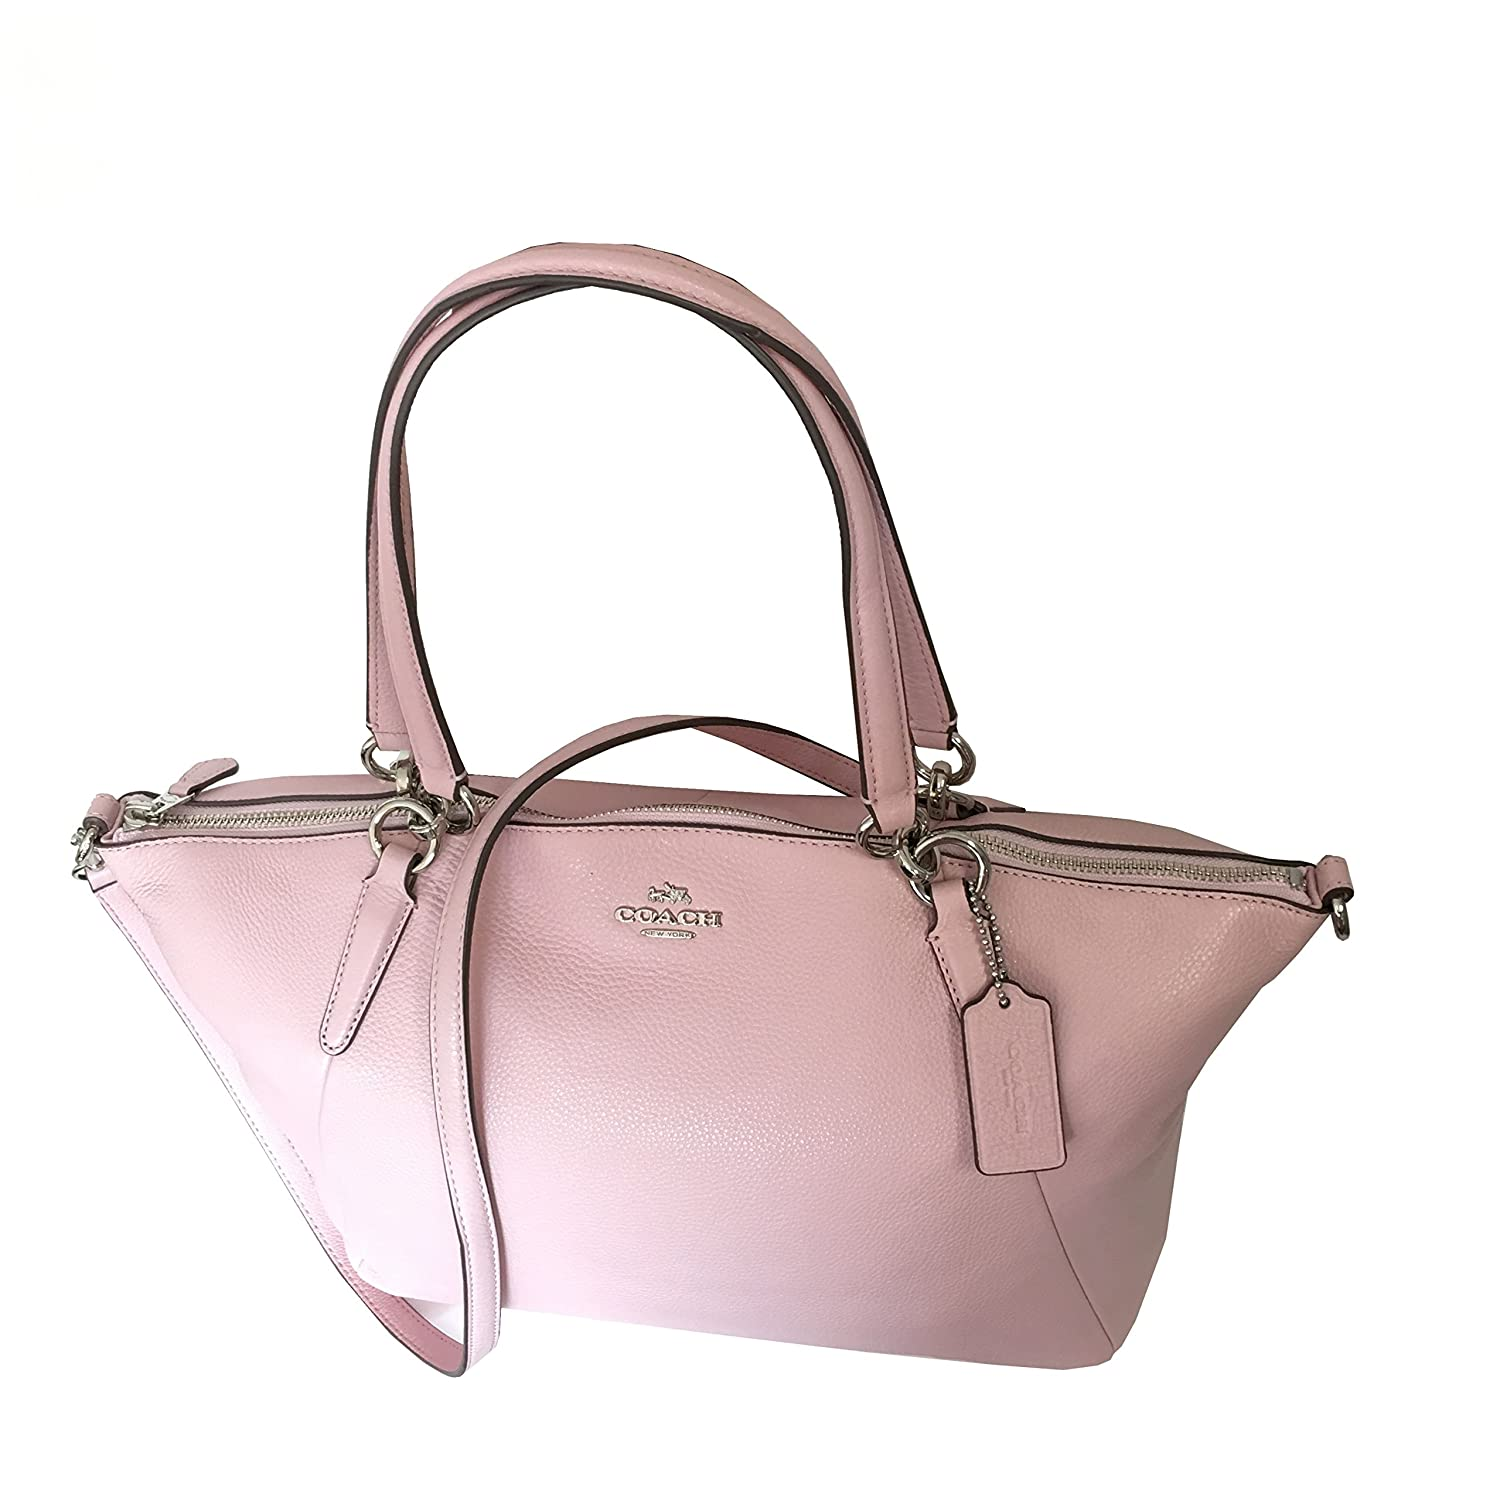 Coach Kelsey Satchel In Pebble Leather Petal With Silver Hardware F36591 Shoes